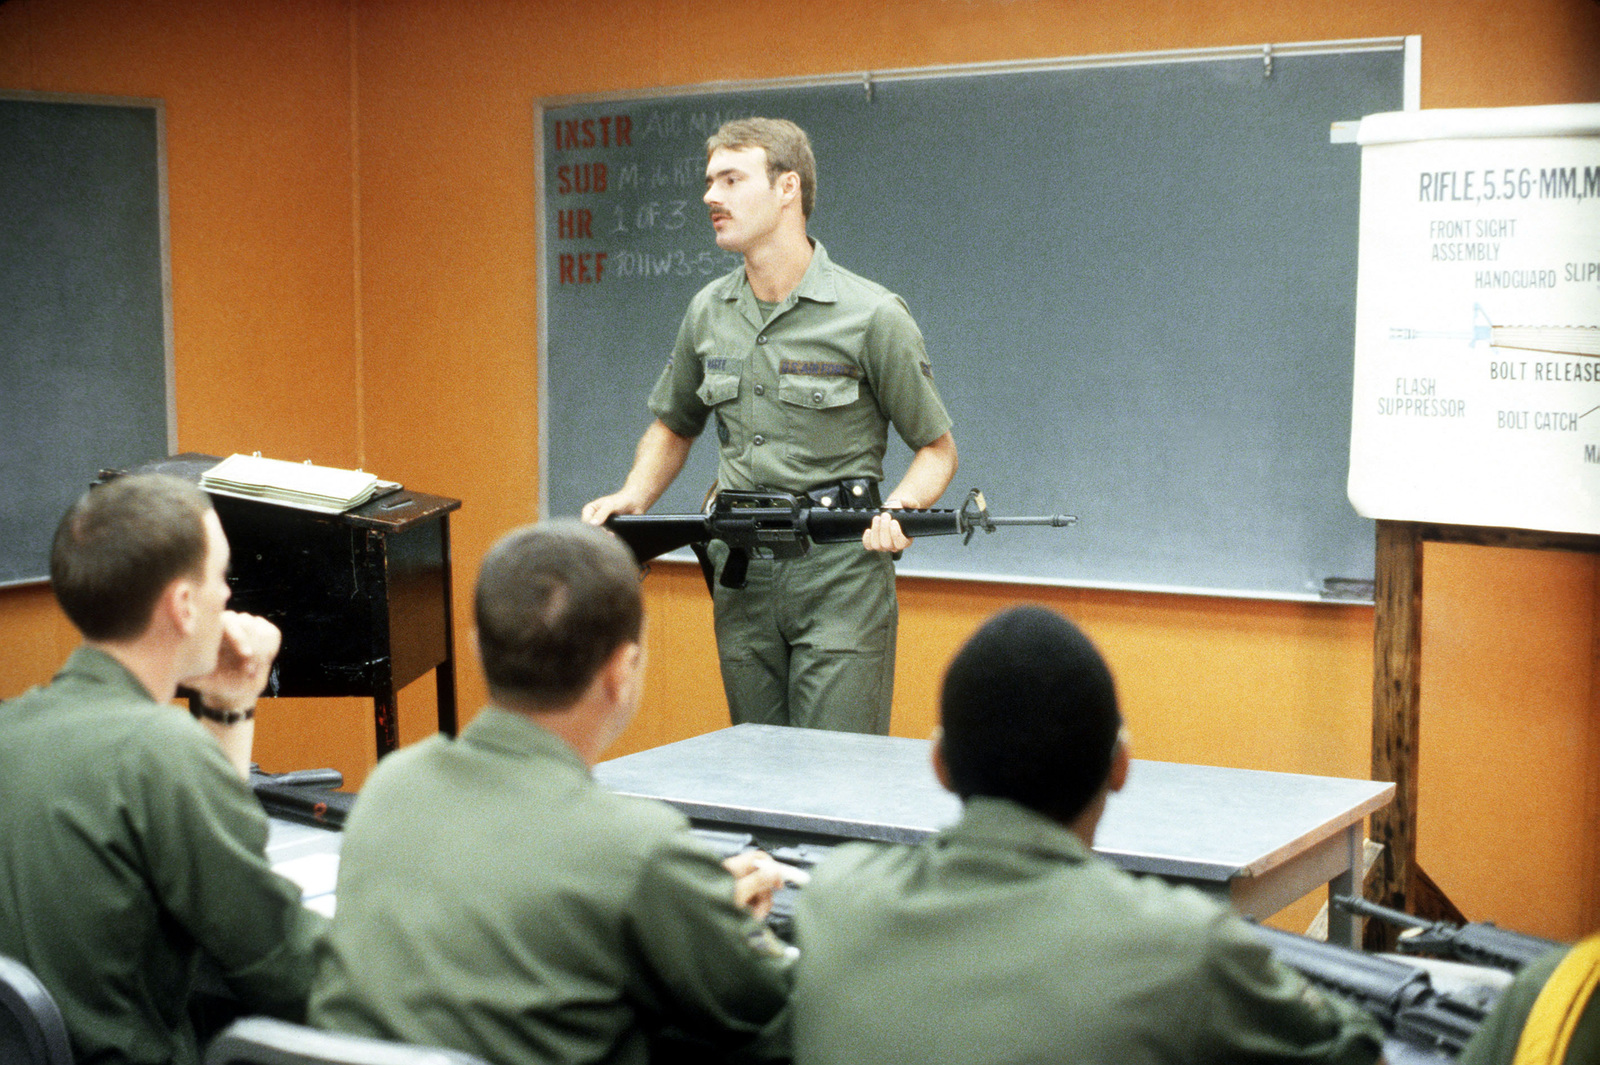 Members of the 90th Security Police Group listen to a